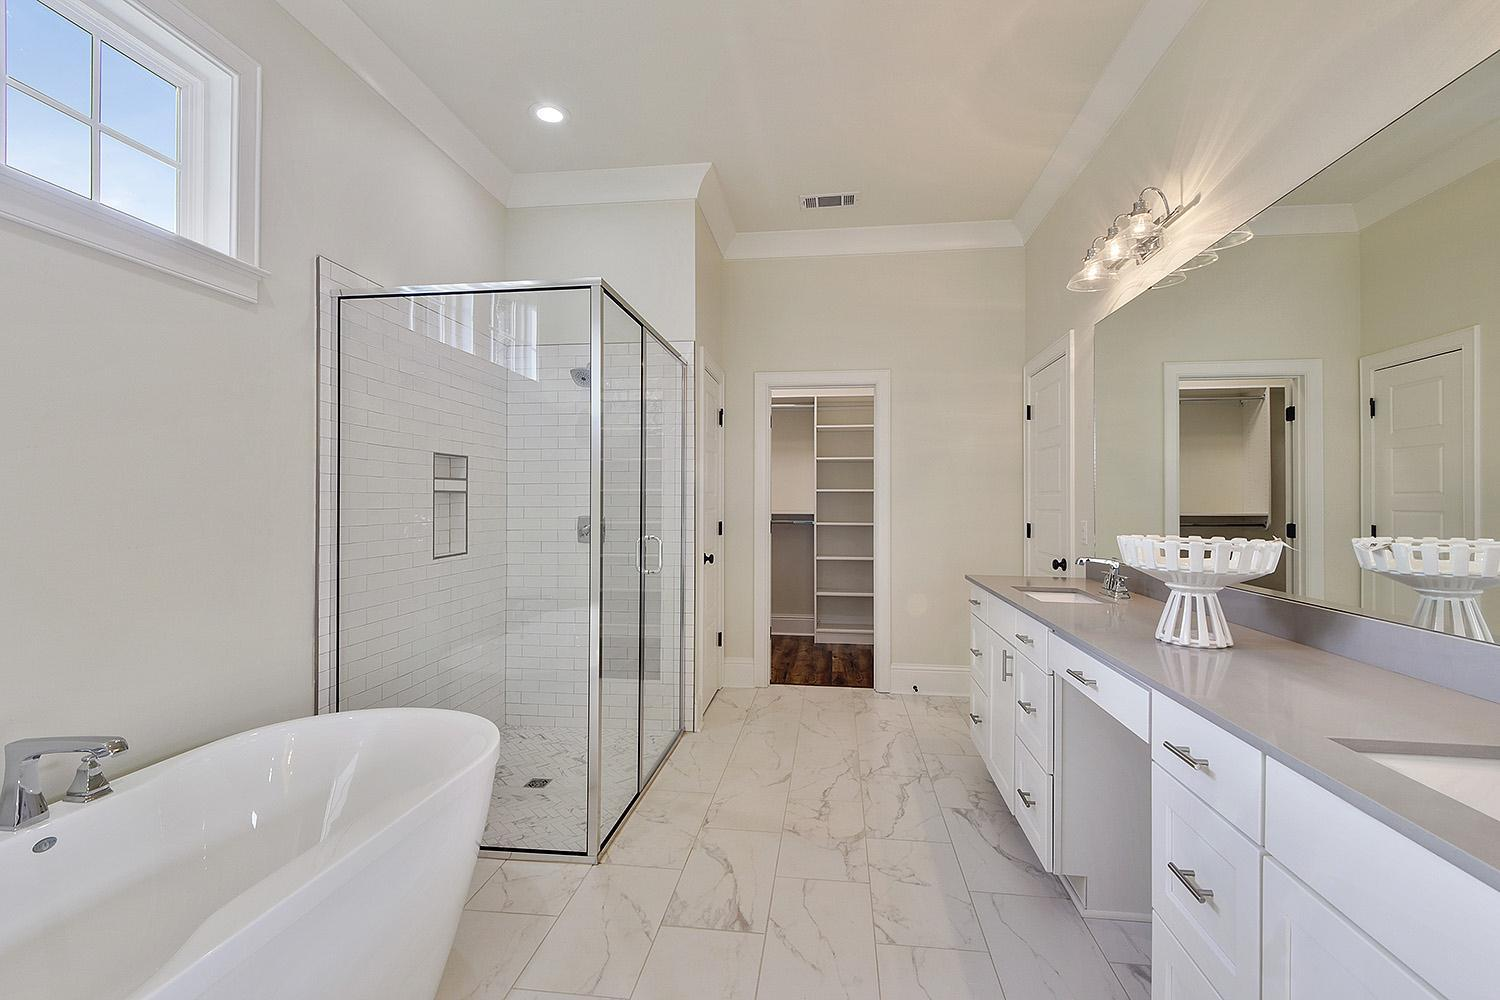 Bathroom featured in the Alexandre By Highland Homes in New Orleans, LA